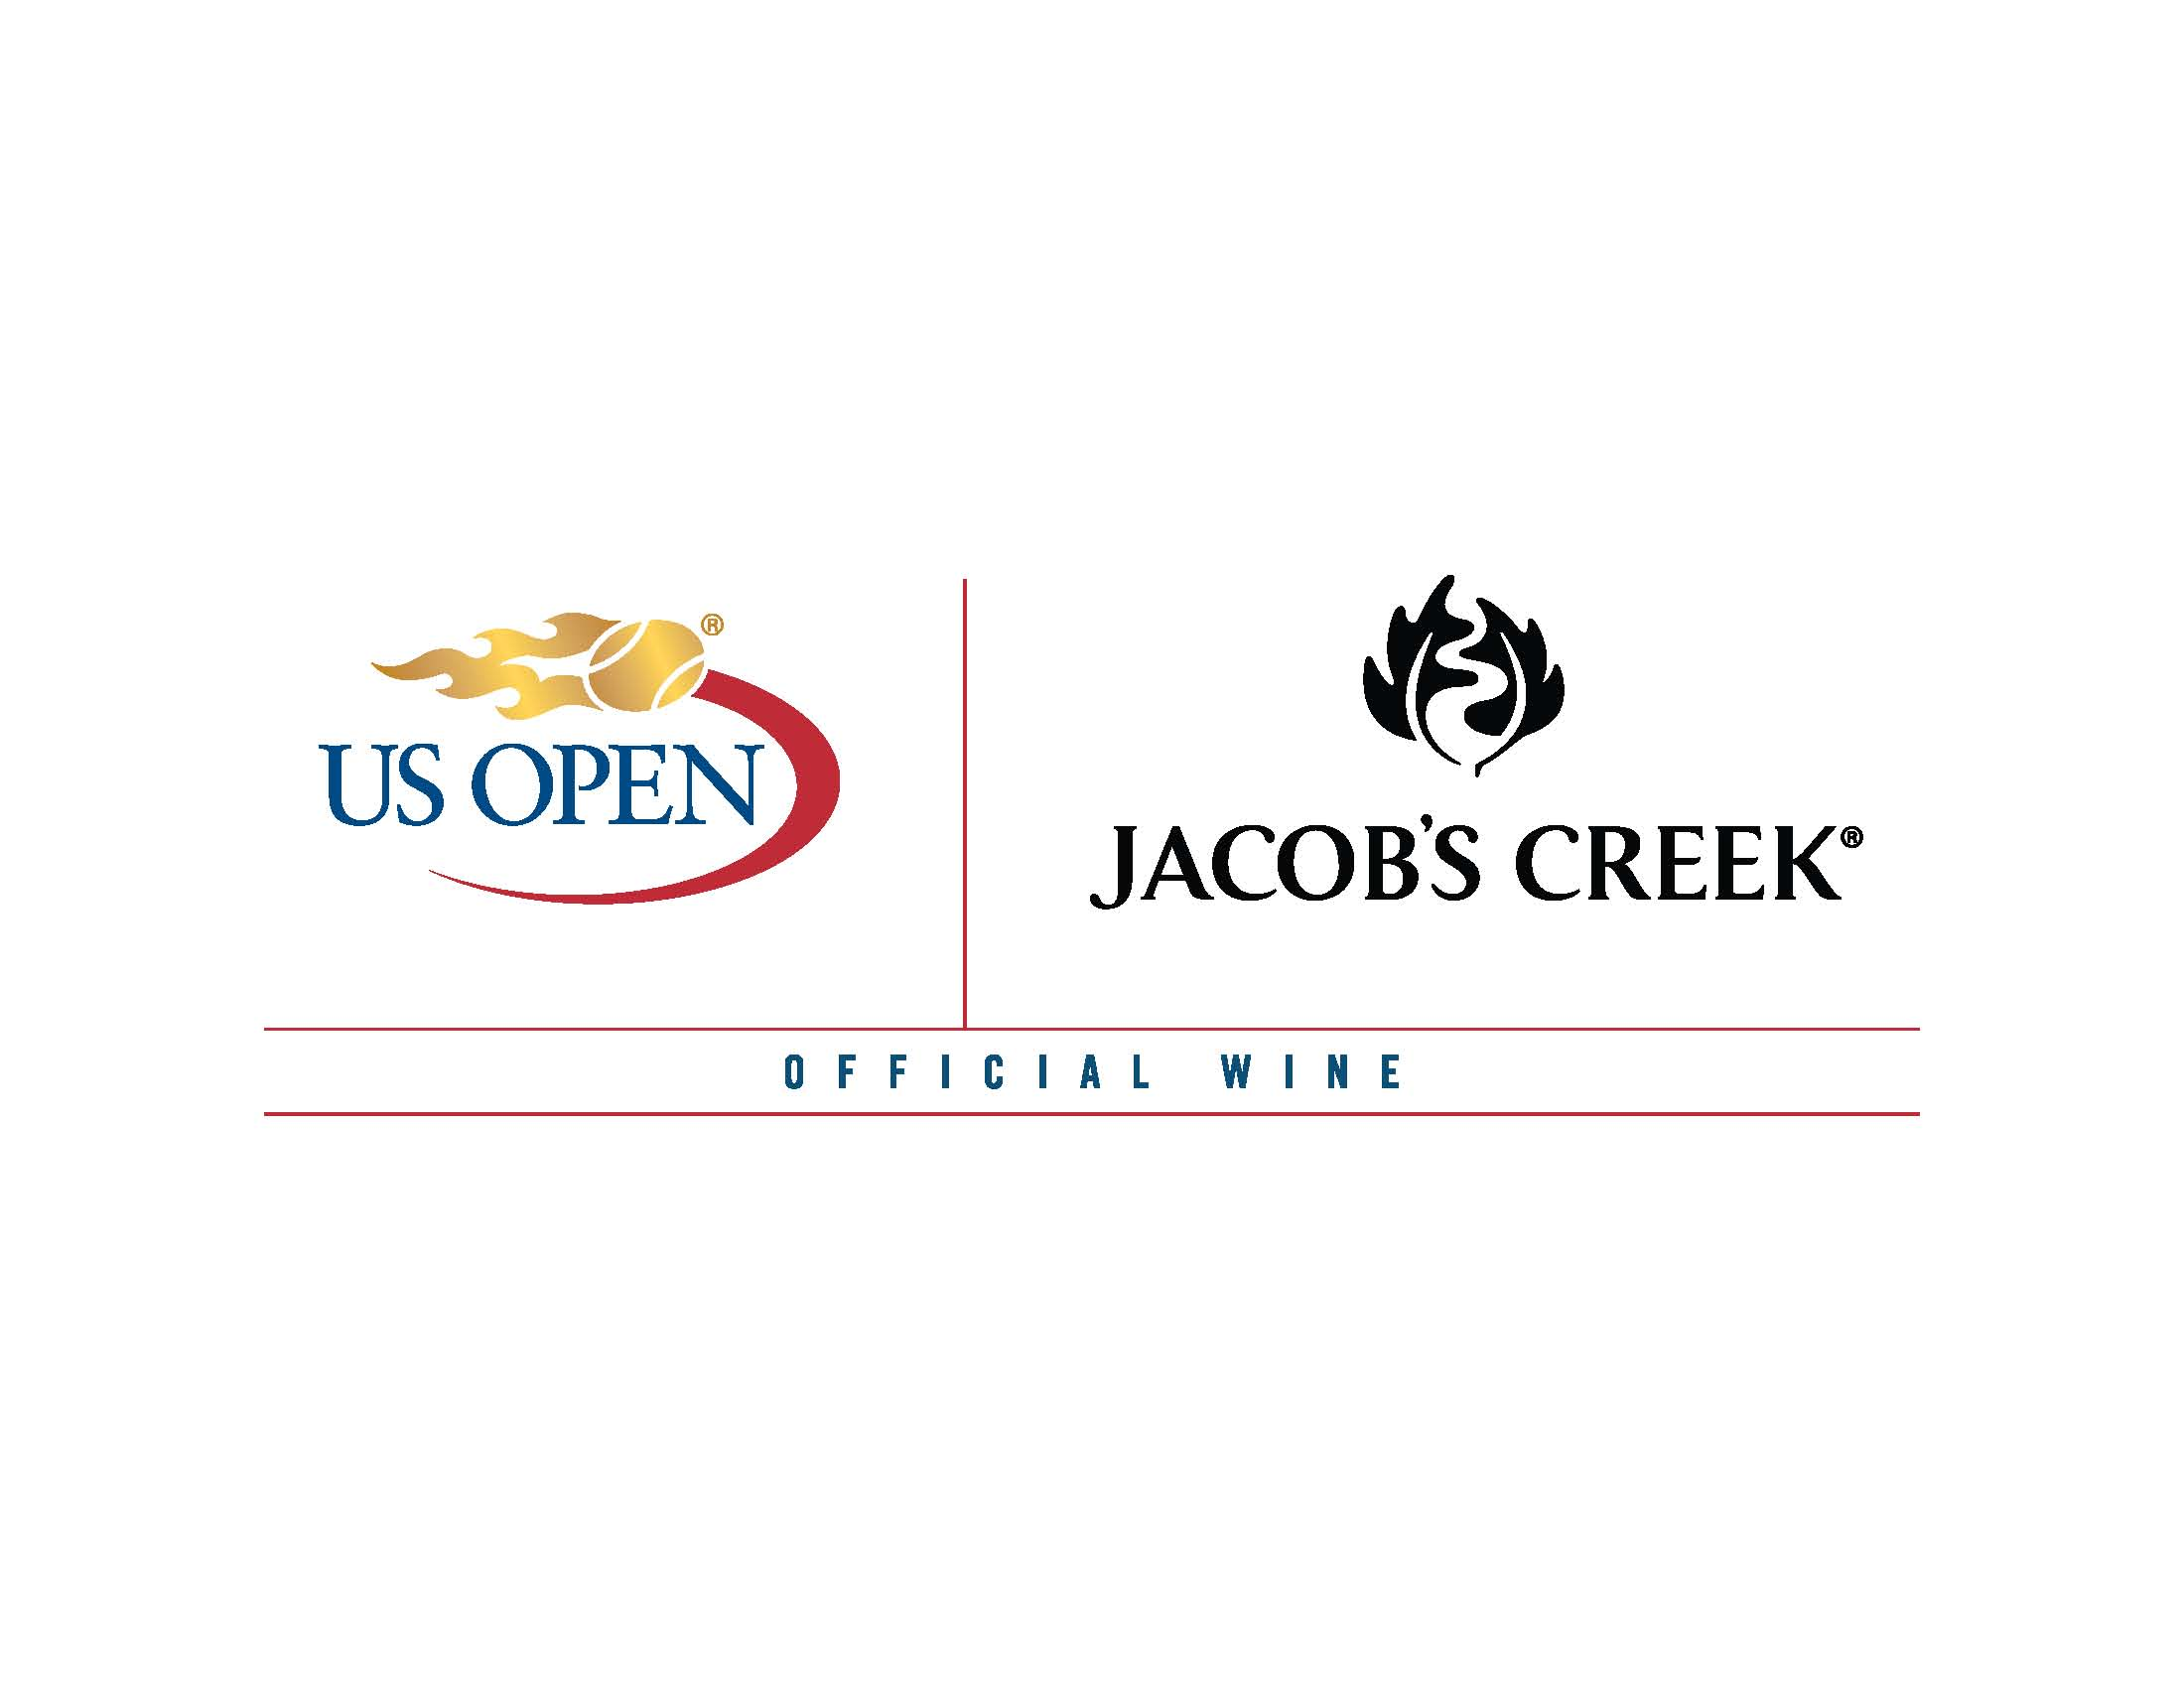 Jacob's Creek Serves Up Wines for U.S. Open for 2015